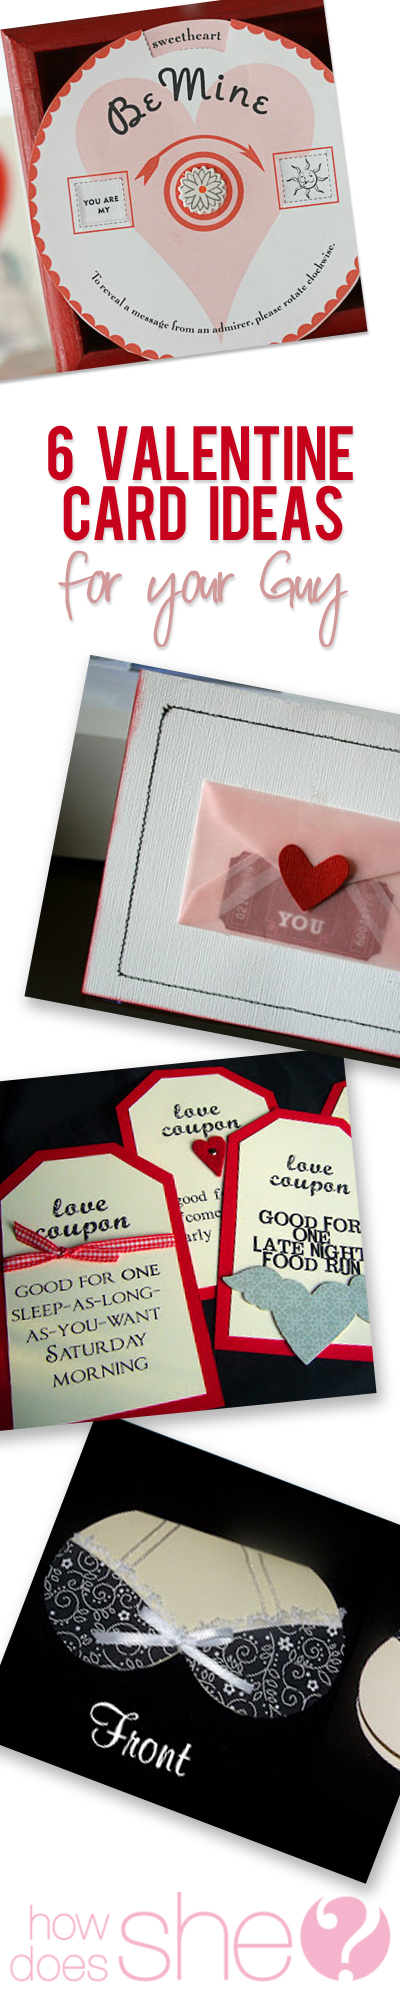 Six Valentine Card Ideas For